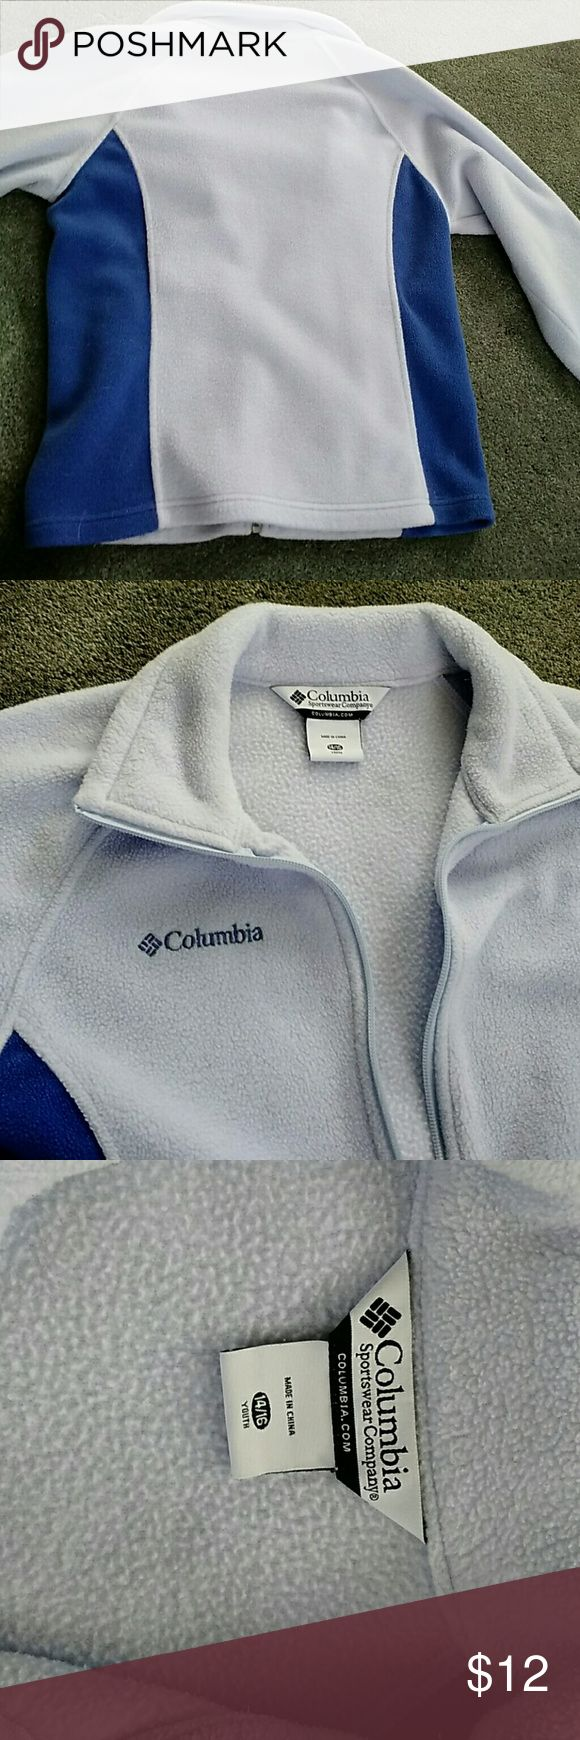 Columbia jacket Lavender with side slimming panels. Tag says youth 14-16 but easily fits ladies size small. Will send measurements if requested. Side zip pockets. Plushy soft. Wear as work out wear or on a casual day. With leggings or jeans. With a Cami underneath or a T-shirt. Columbia Sweaters Cardigans